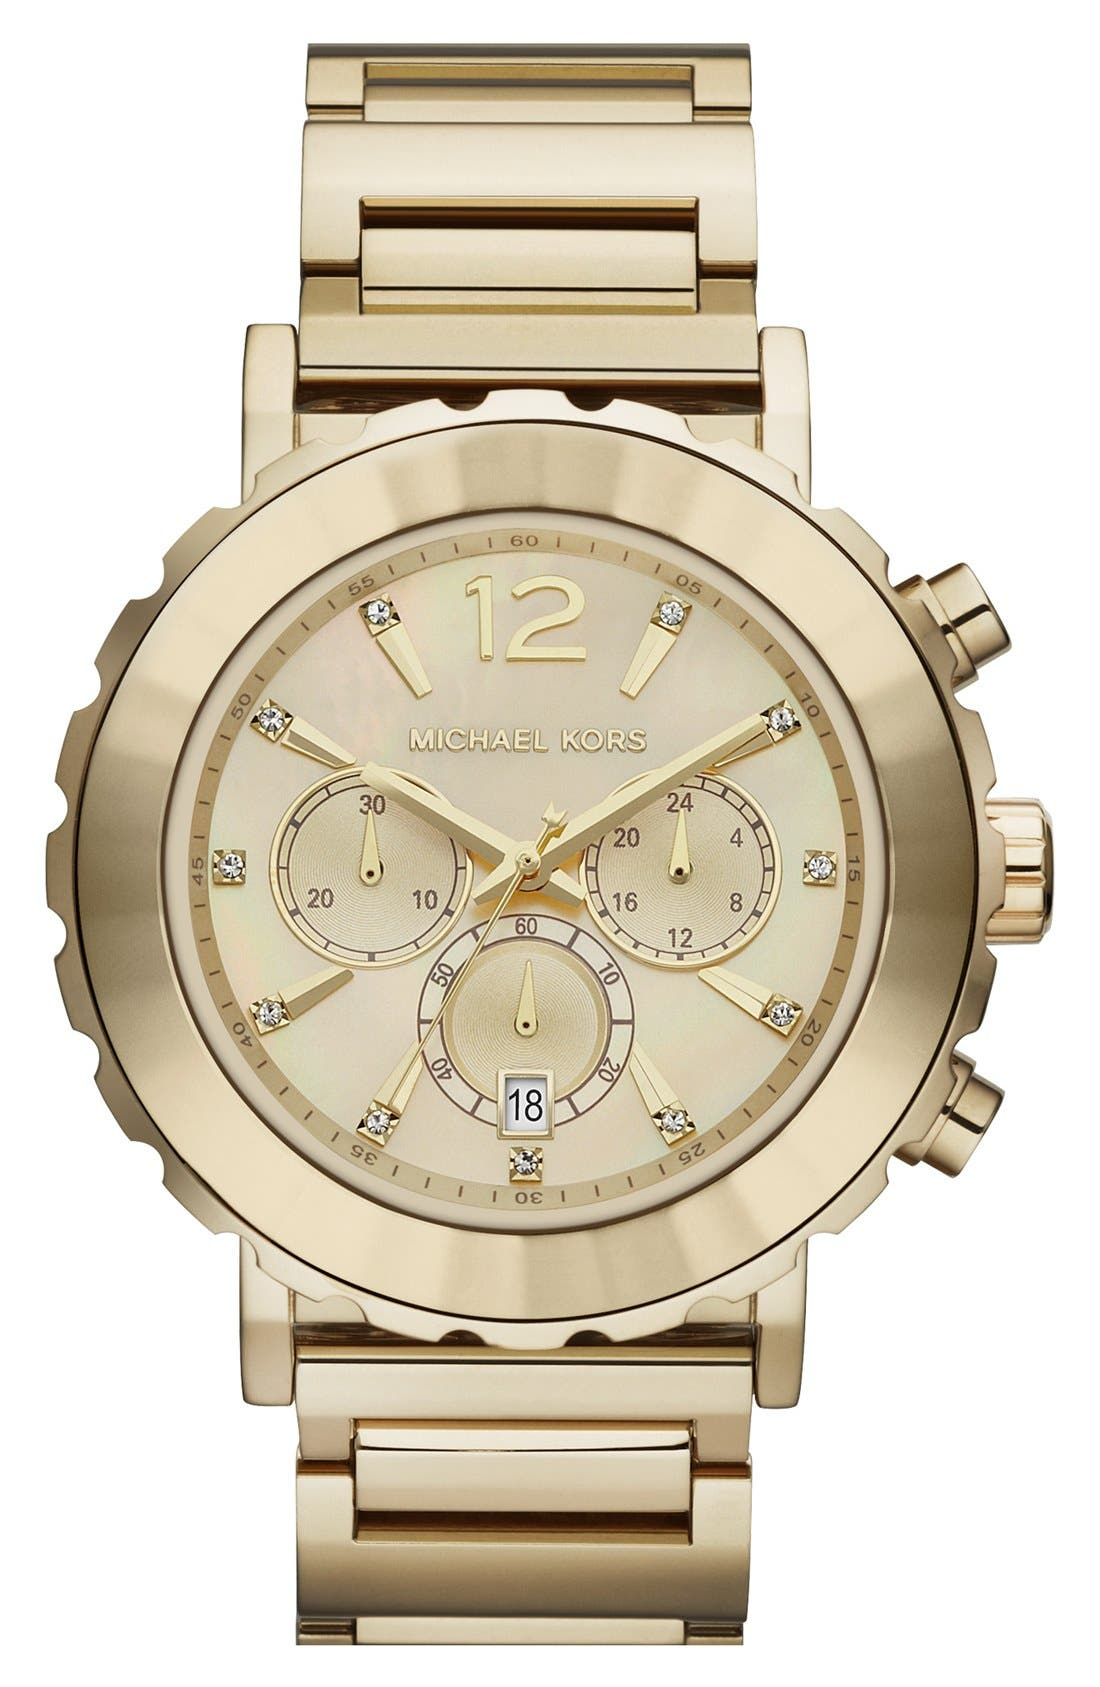 Main Image - Michael Kors 'Lille' Chronograph Bracelet Watch, 45mm